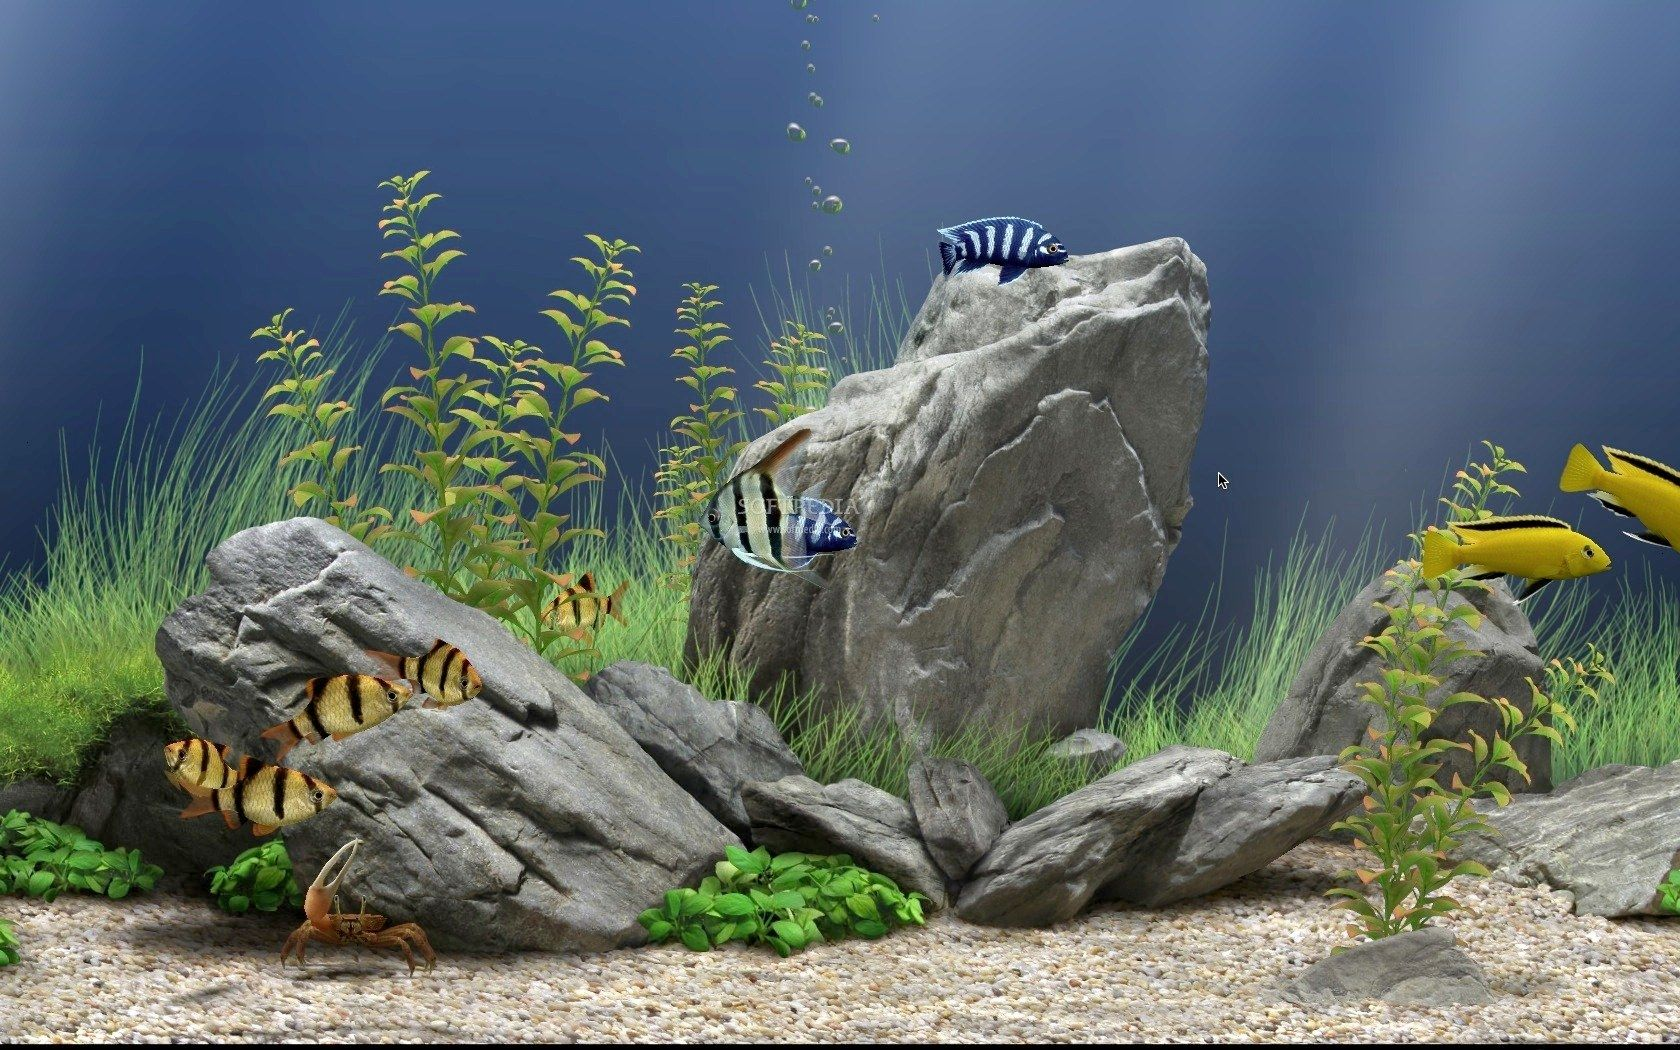 Freshwater fish tank upkeep - Freshwater Aquarium Stones Layout A Miniature Northern California Landscape